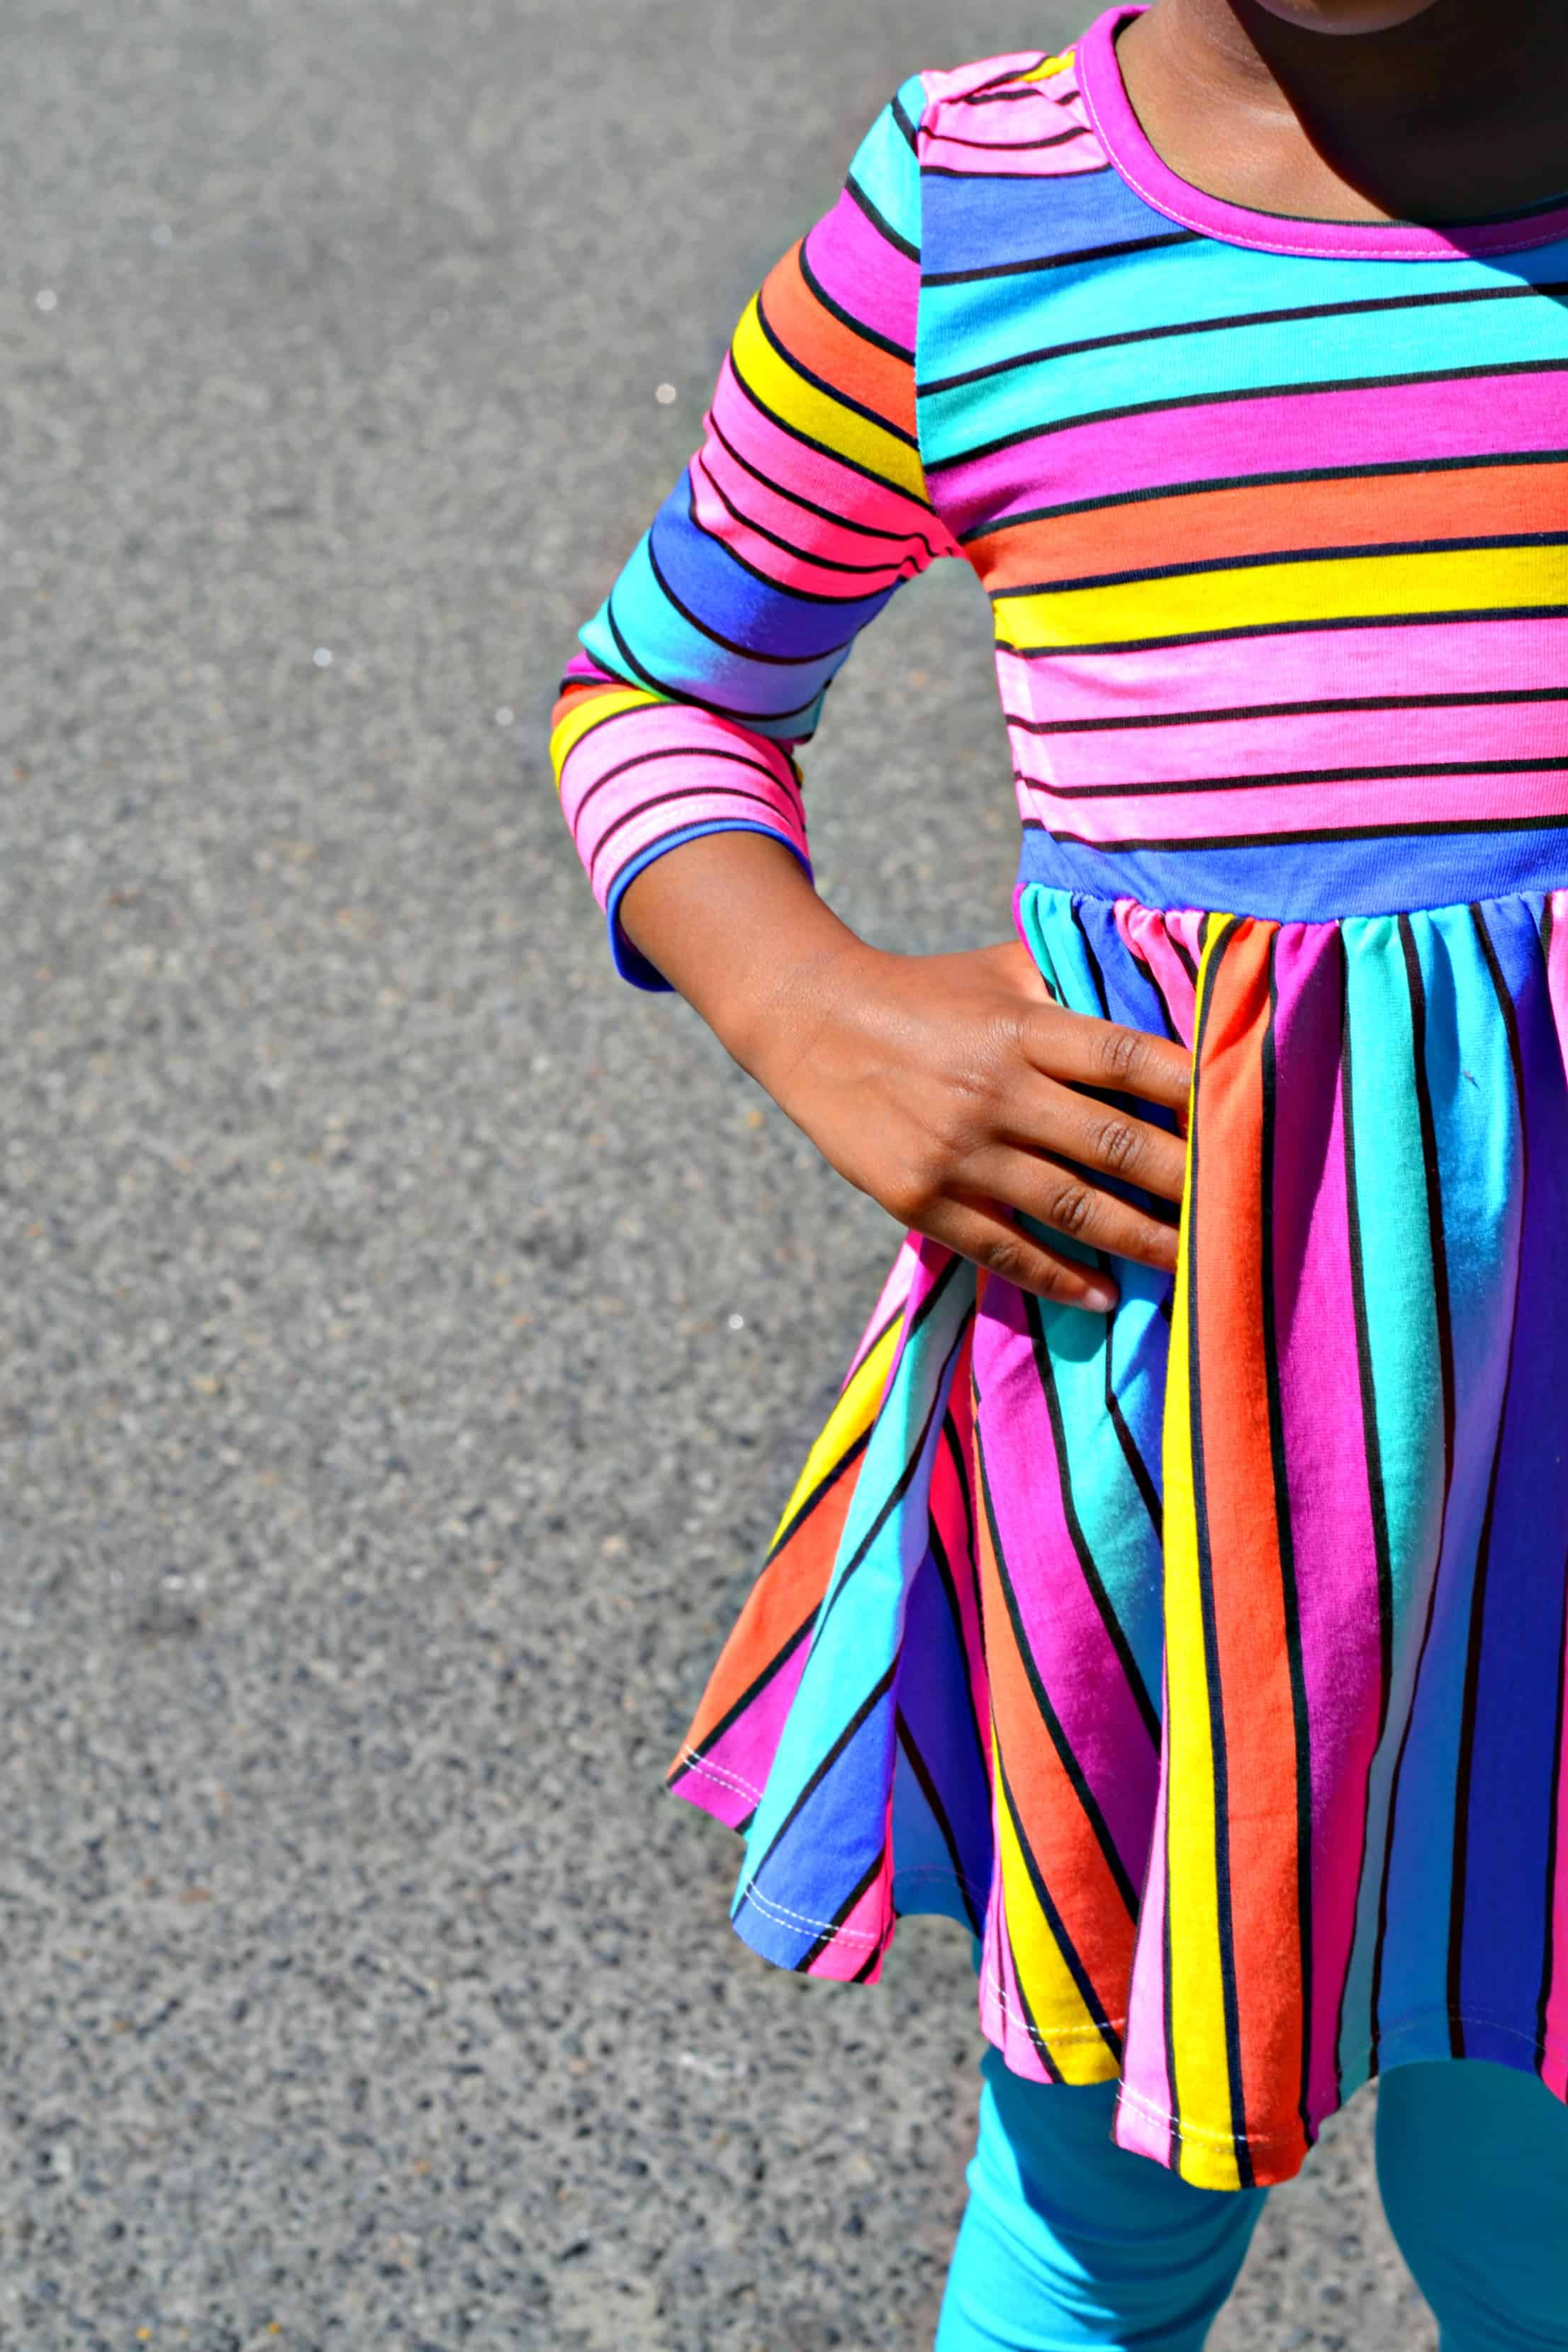 You can't go wrong with a colorful striped dress, especially on a little girl. Check out the dress this little fashionista is loving right now.